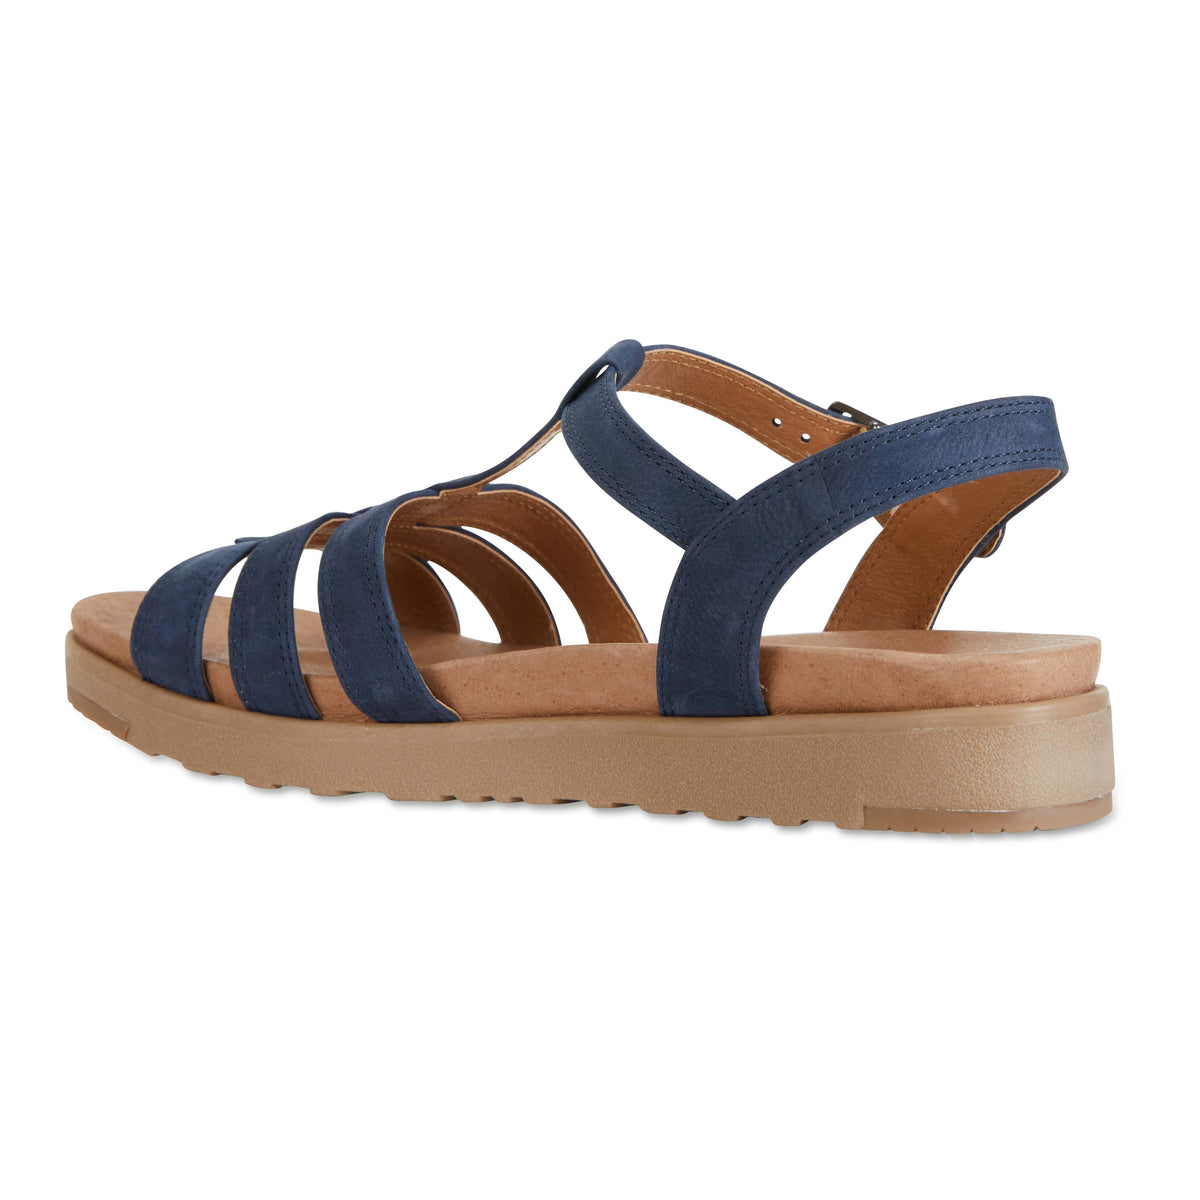 Ohio Sandal in Navy Leather